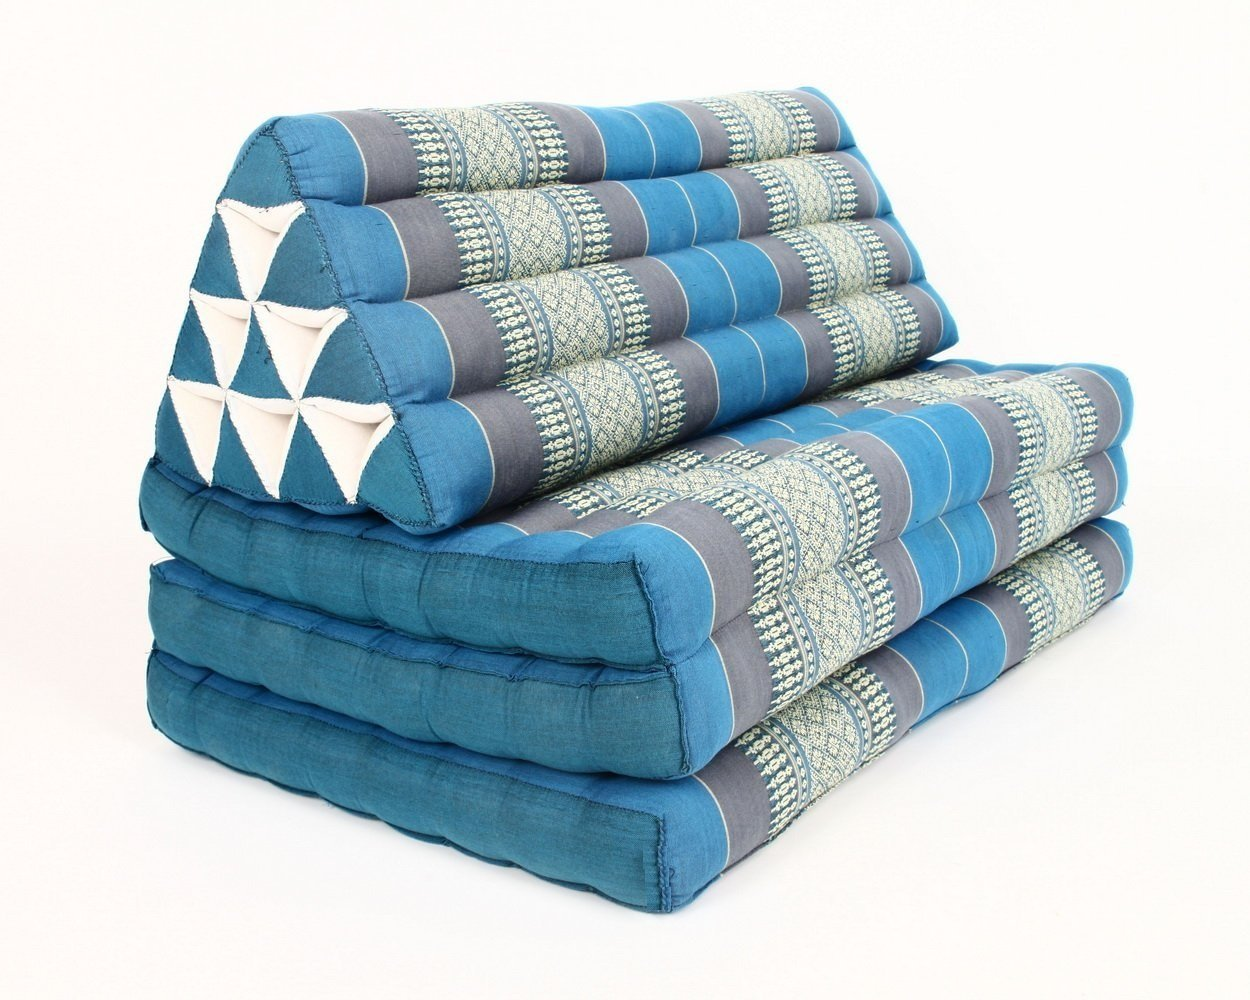 XL Foldout Triangle Thai Cushion, 79x30x3 inches, Kapok Fabric, Blue, by Thailand by Kaikeng